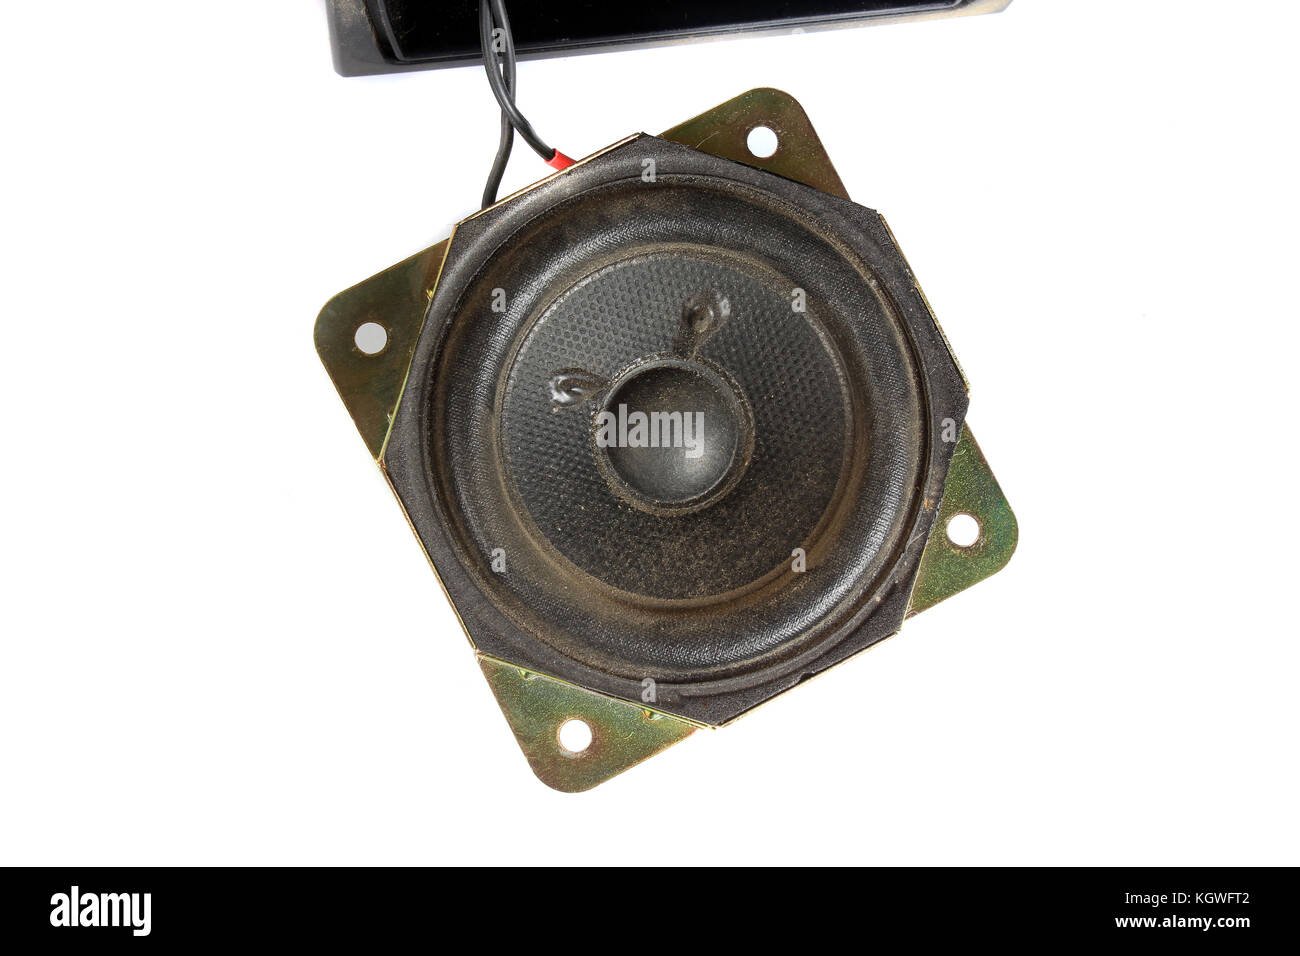 The woofer inside an old computer speaker made of fibre and metal. - Stock Image